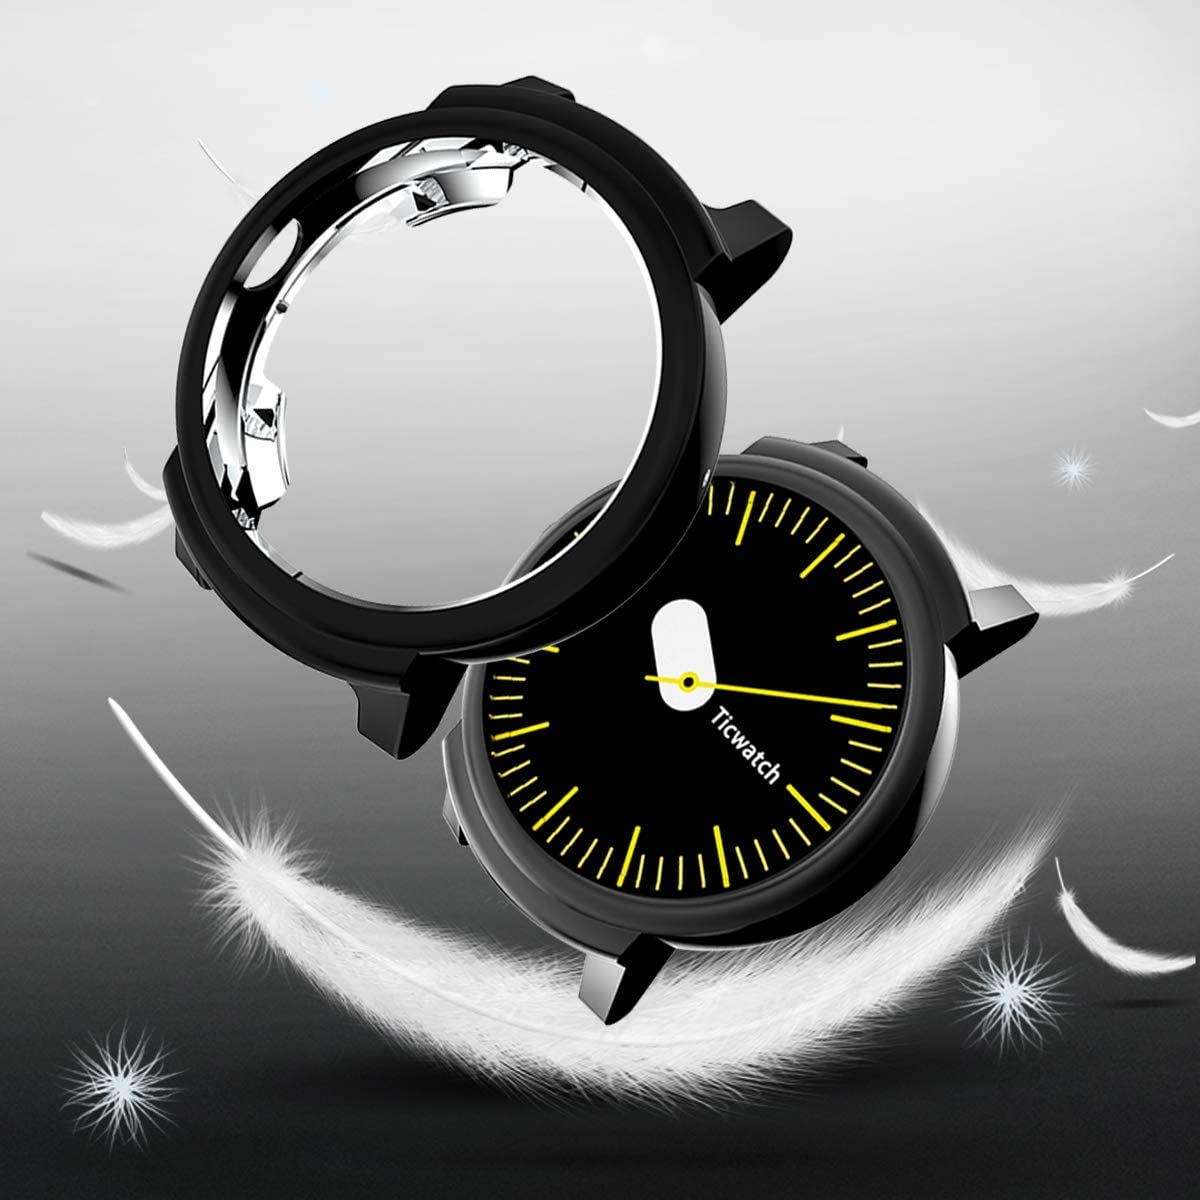 Clear Cerike Compatible for TicWatch E Case,Protective Shell Case Anti-Scratch Bumper Cover for TicWatch E Smartwatch